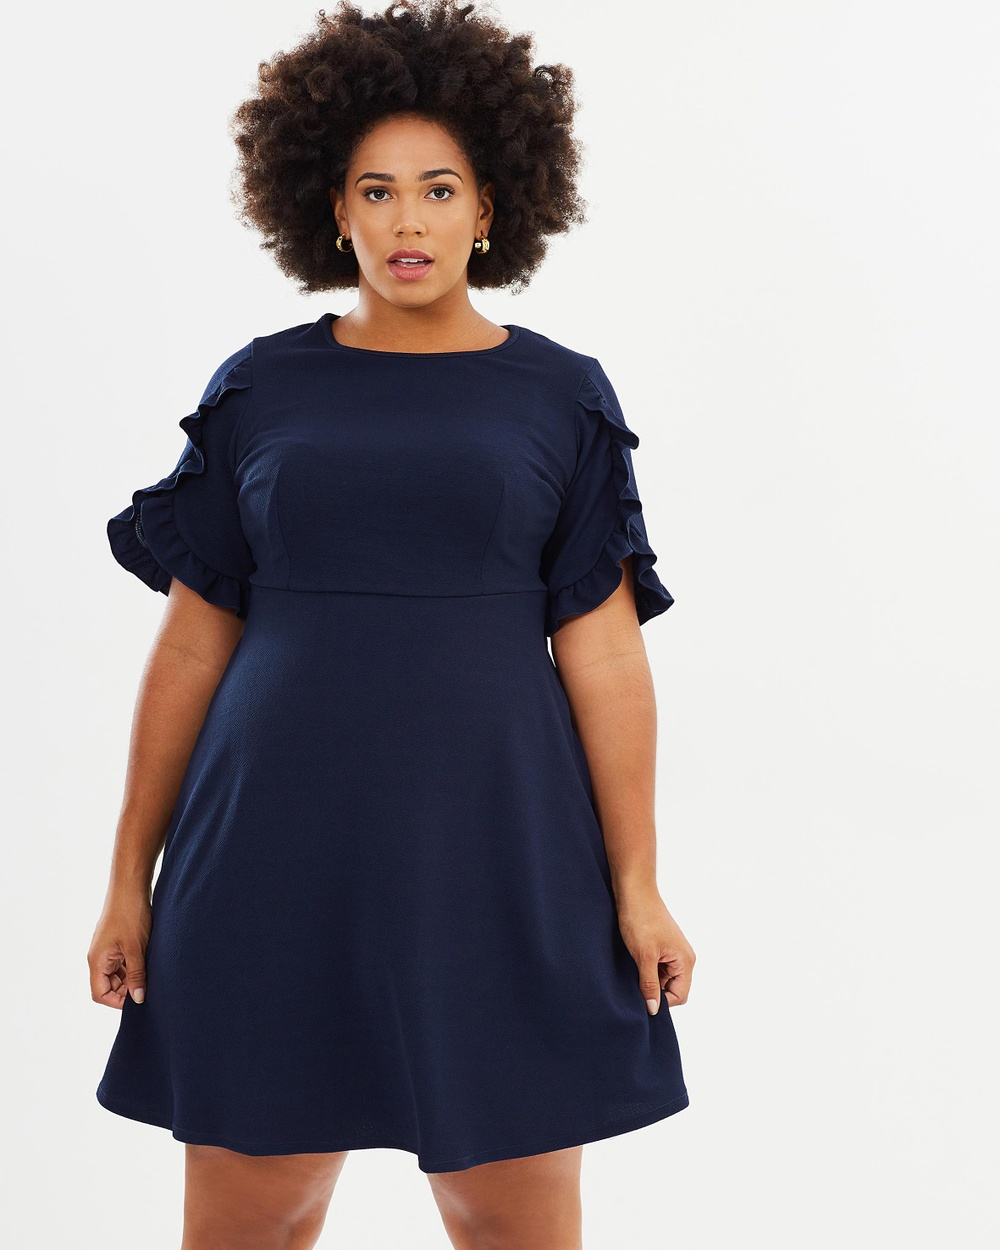 DP Curve Ruffle Dress Dresses Navy Ruffle Dress